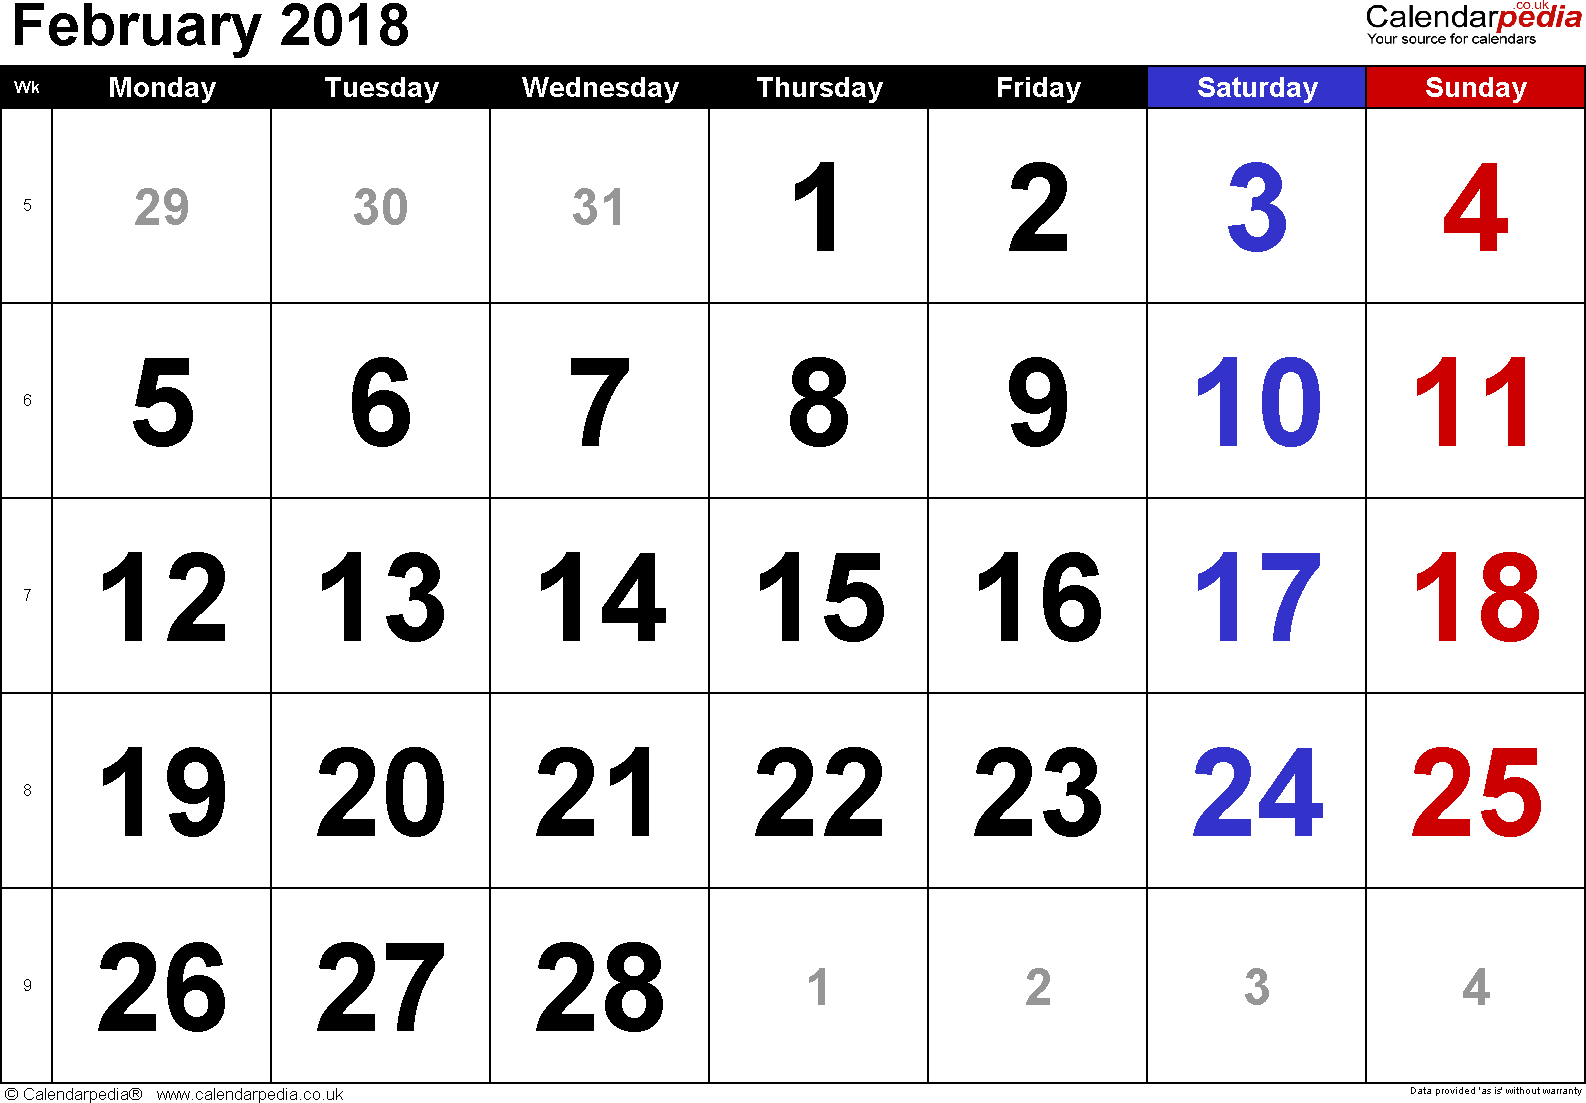 Calendar February 2018, landscape orientation, large numerals, 1 page, with UK bank holidays and week numbers